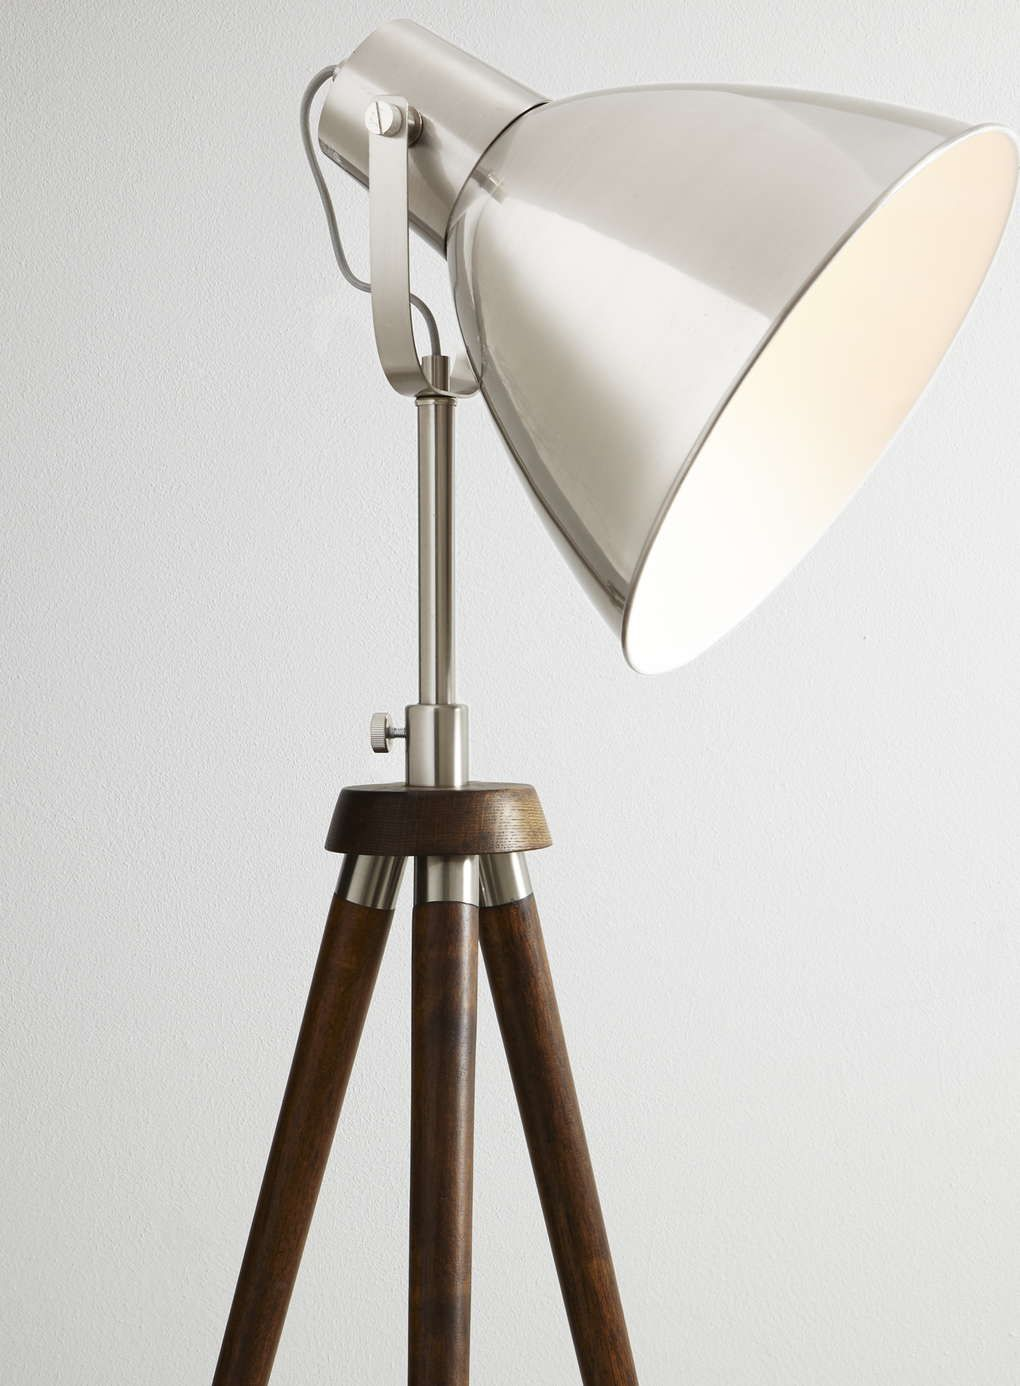 Wood sidra camera floor lamp bhs industrial wood lamp satation wood sidra camera floor lamp bhs mozeypictures Image collections